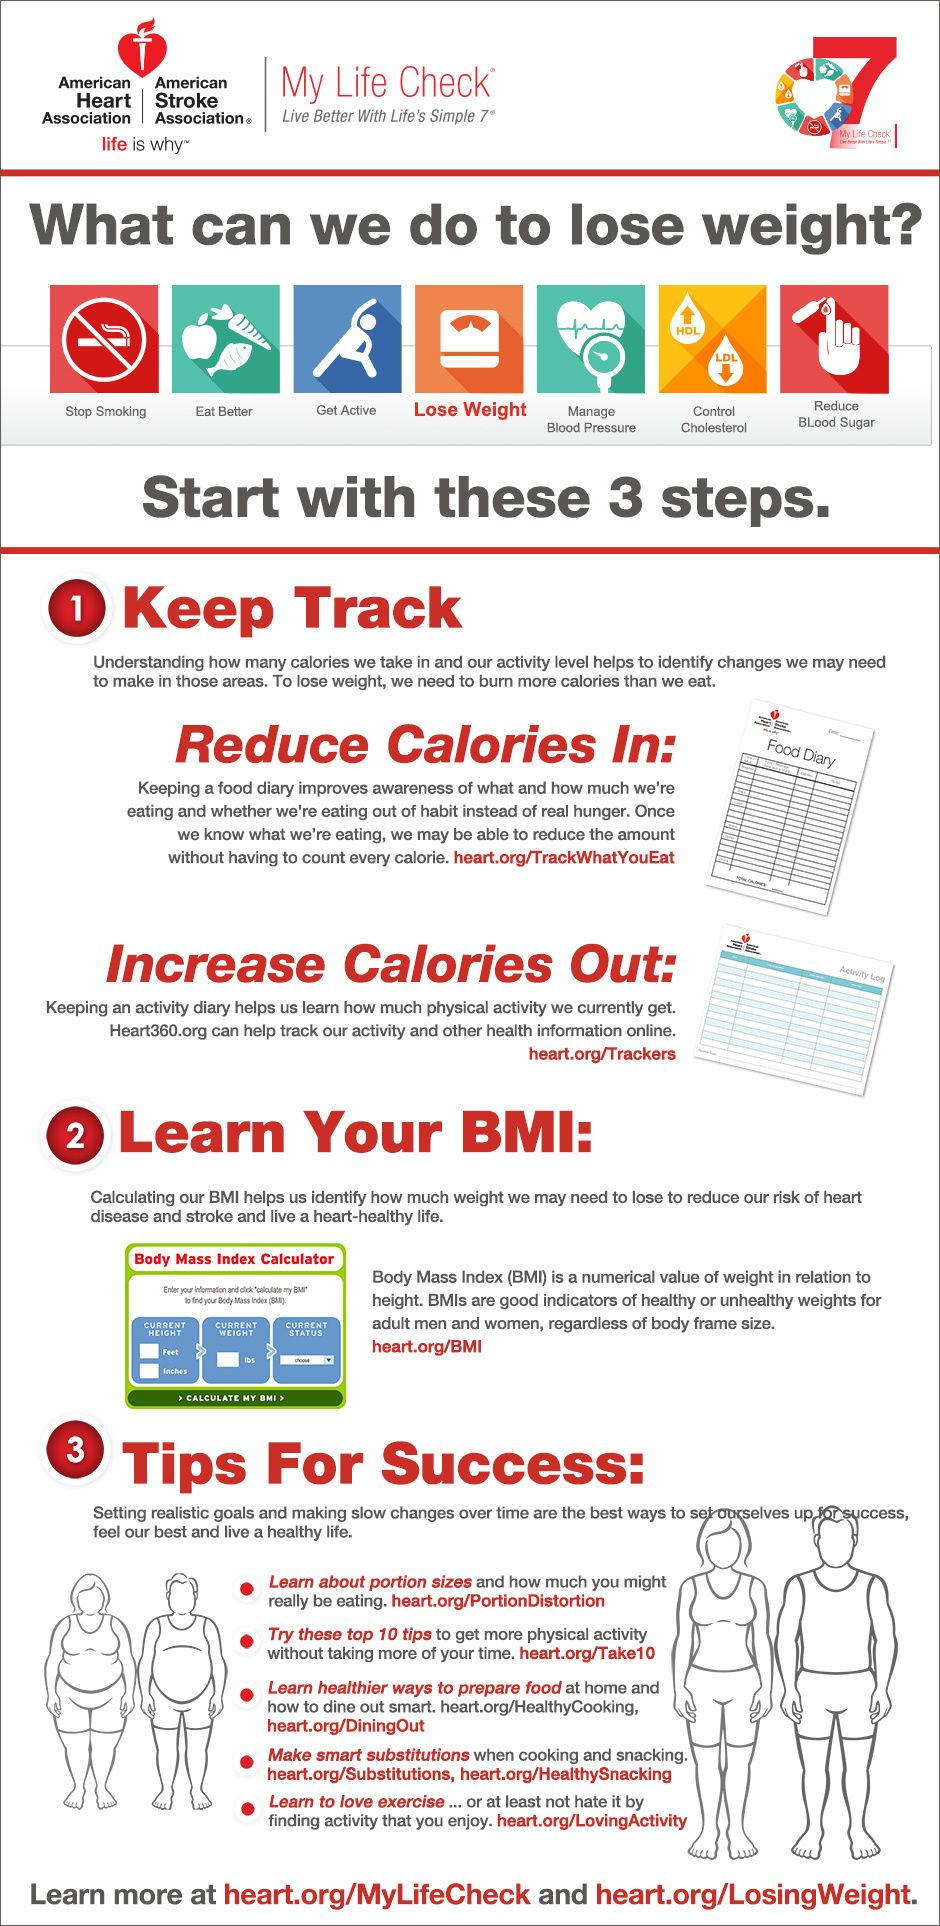 FC-LSS-Losing Weight Infographic | New Year-2017 | Pinterest ...